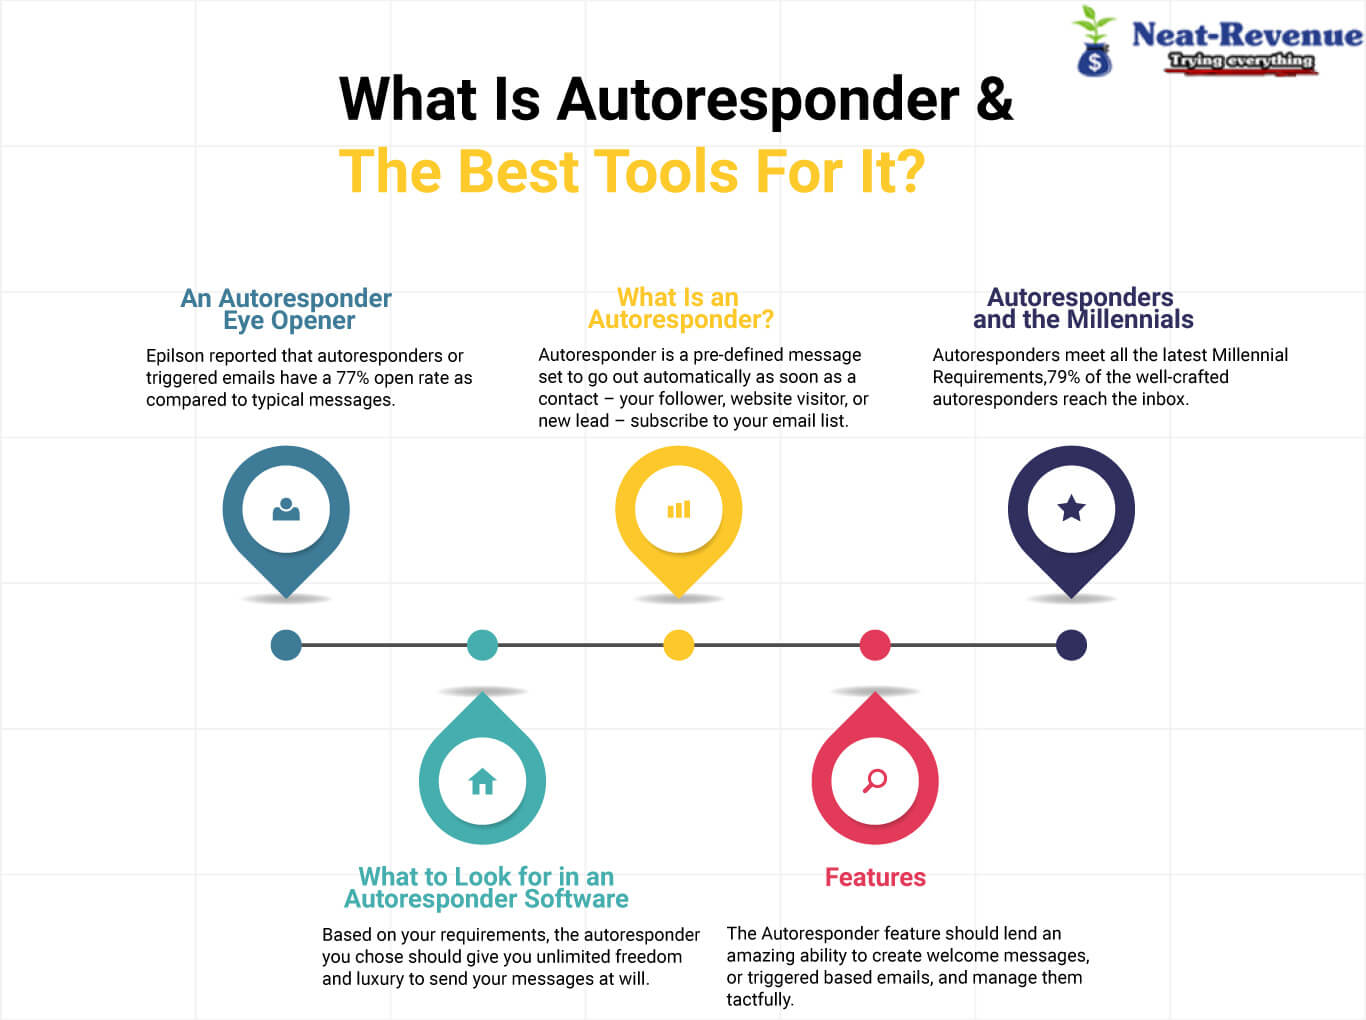 What Is Autoresponder & The Best Tools For It - Infographics